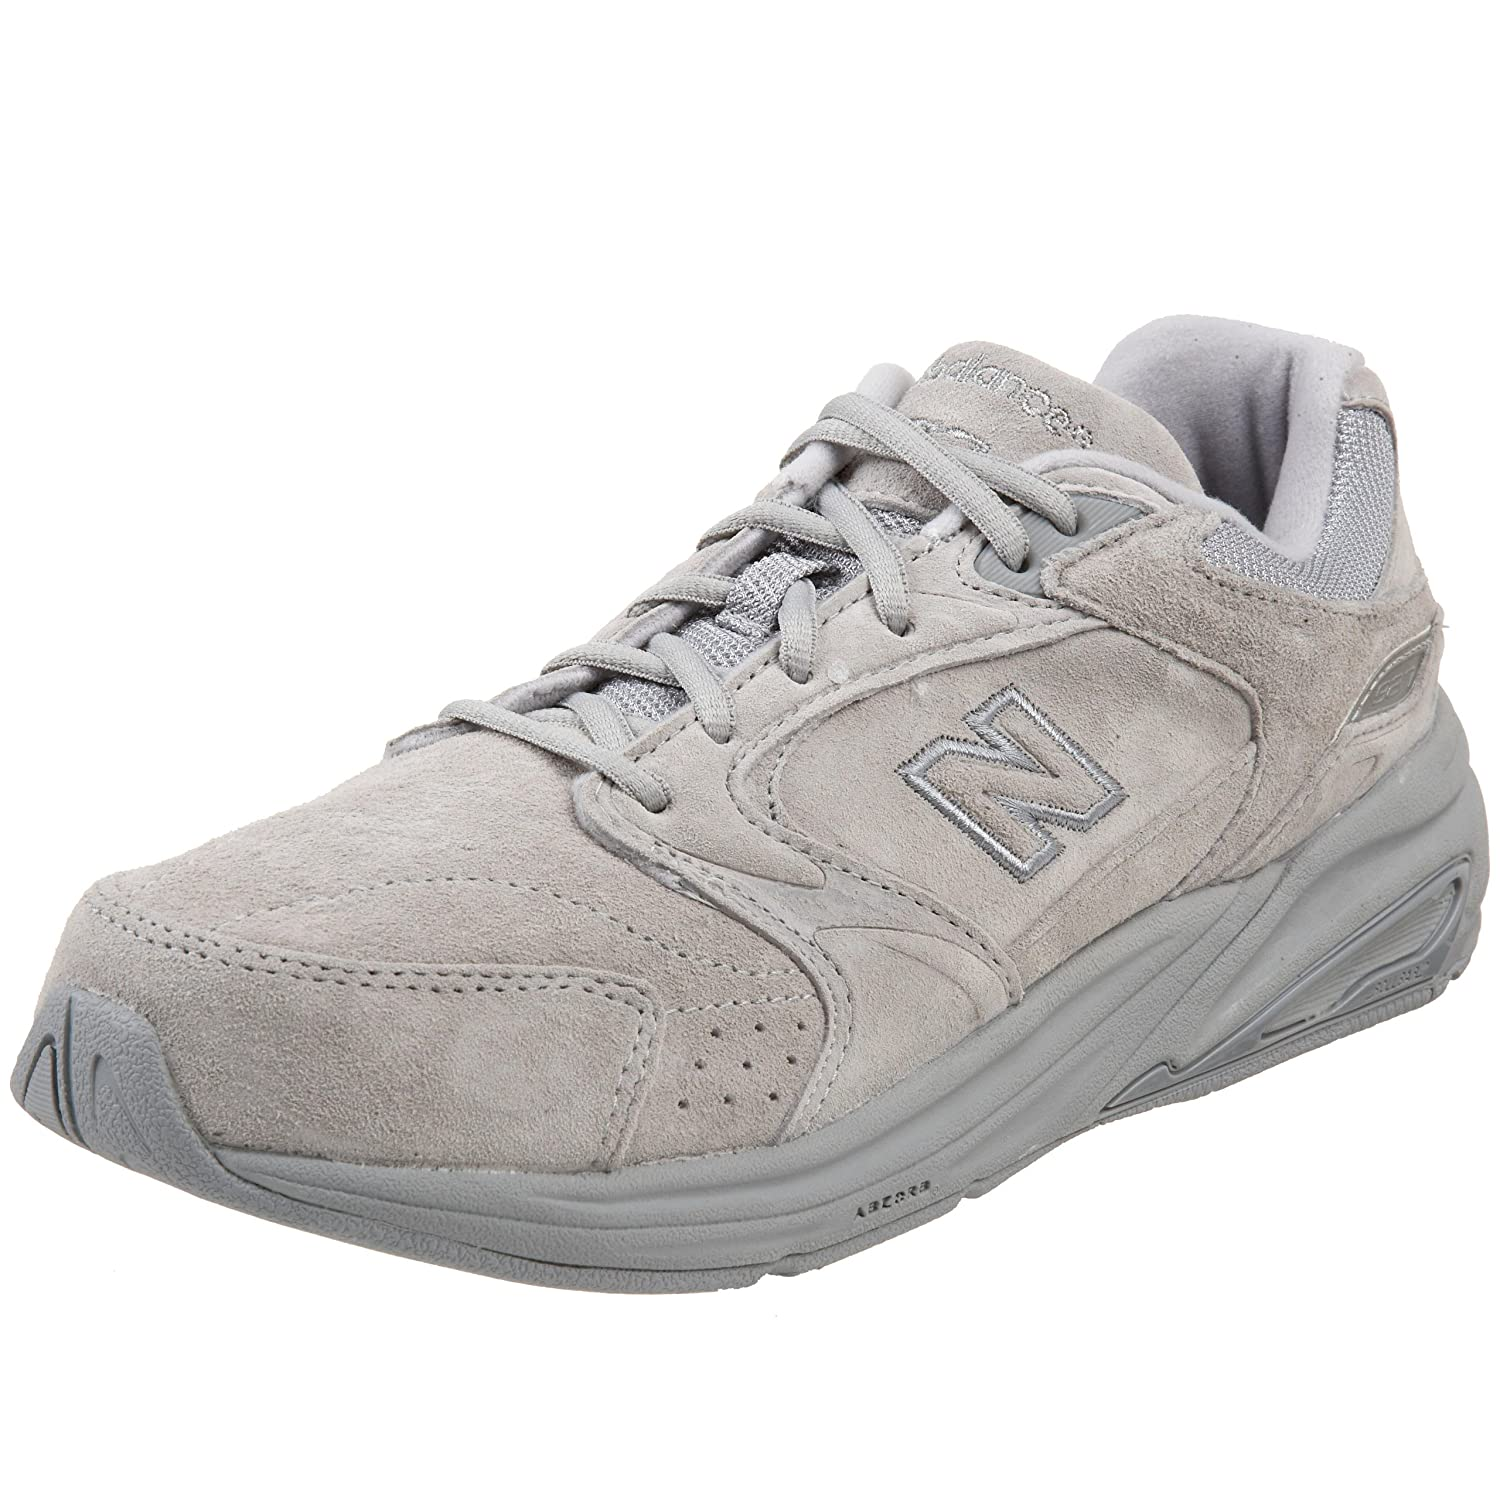 New Balance Men's MW927 Health Walking Shoe